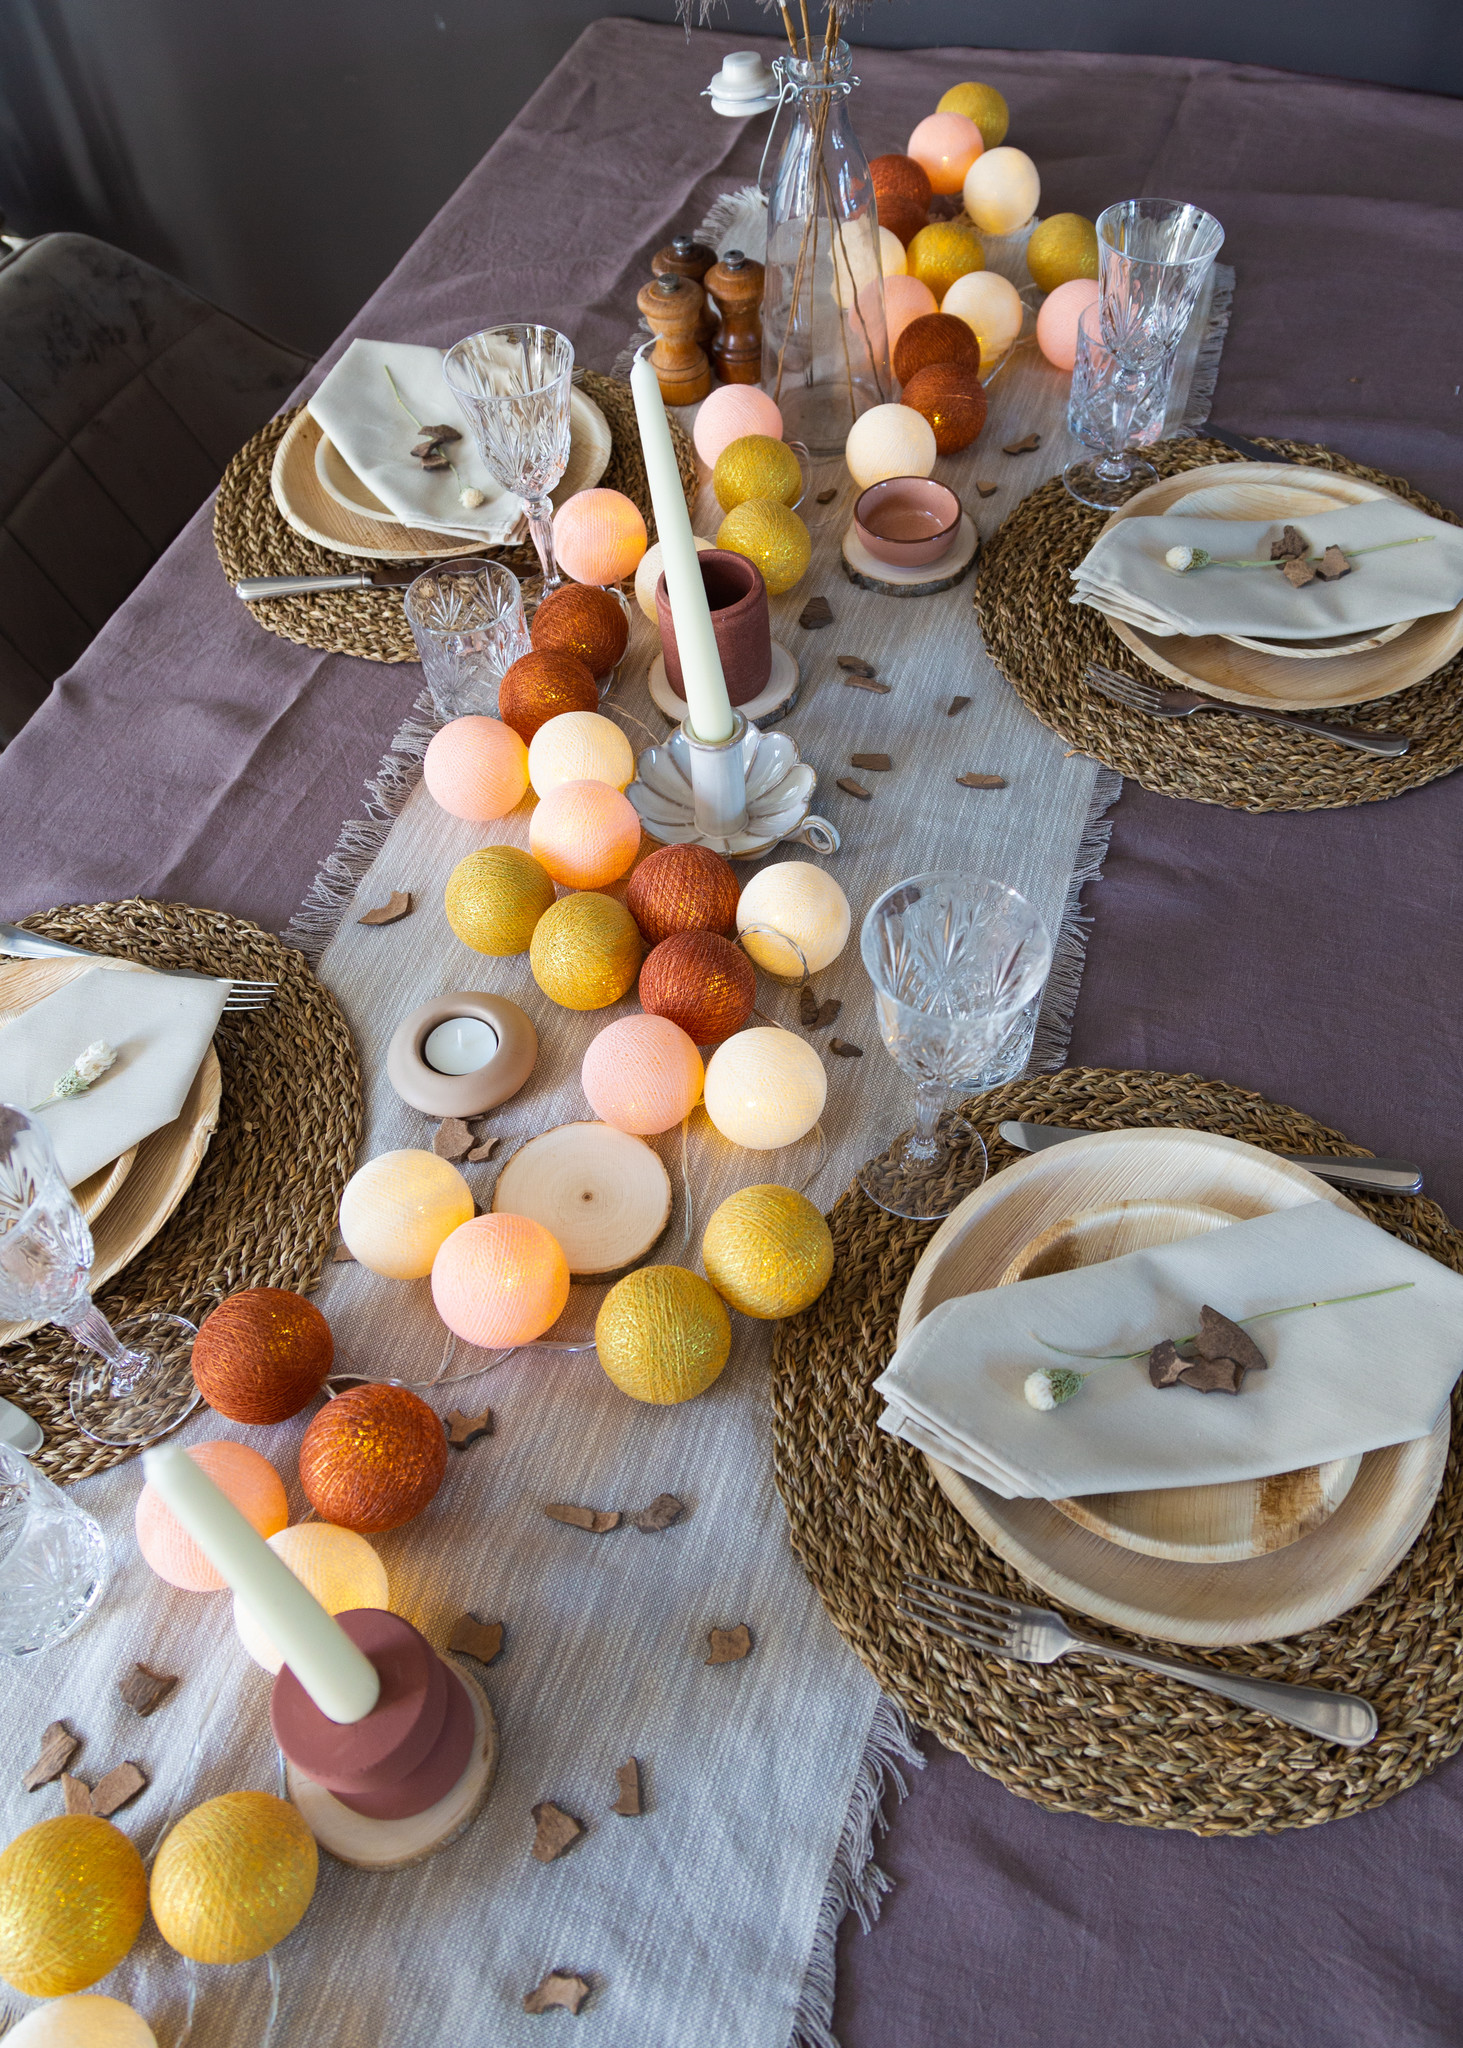 How do you create a cozy table setting during the holidays?